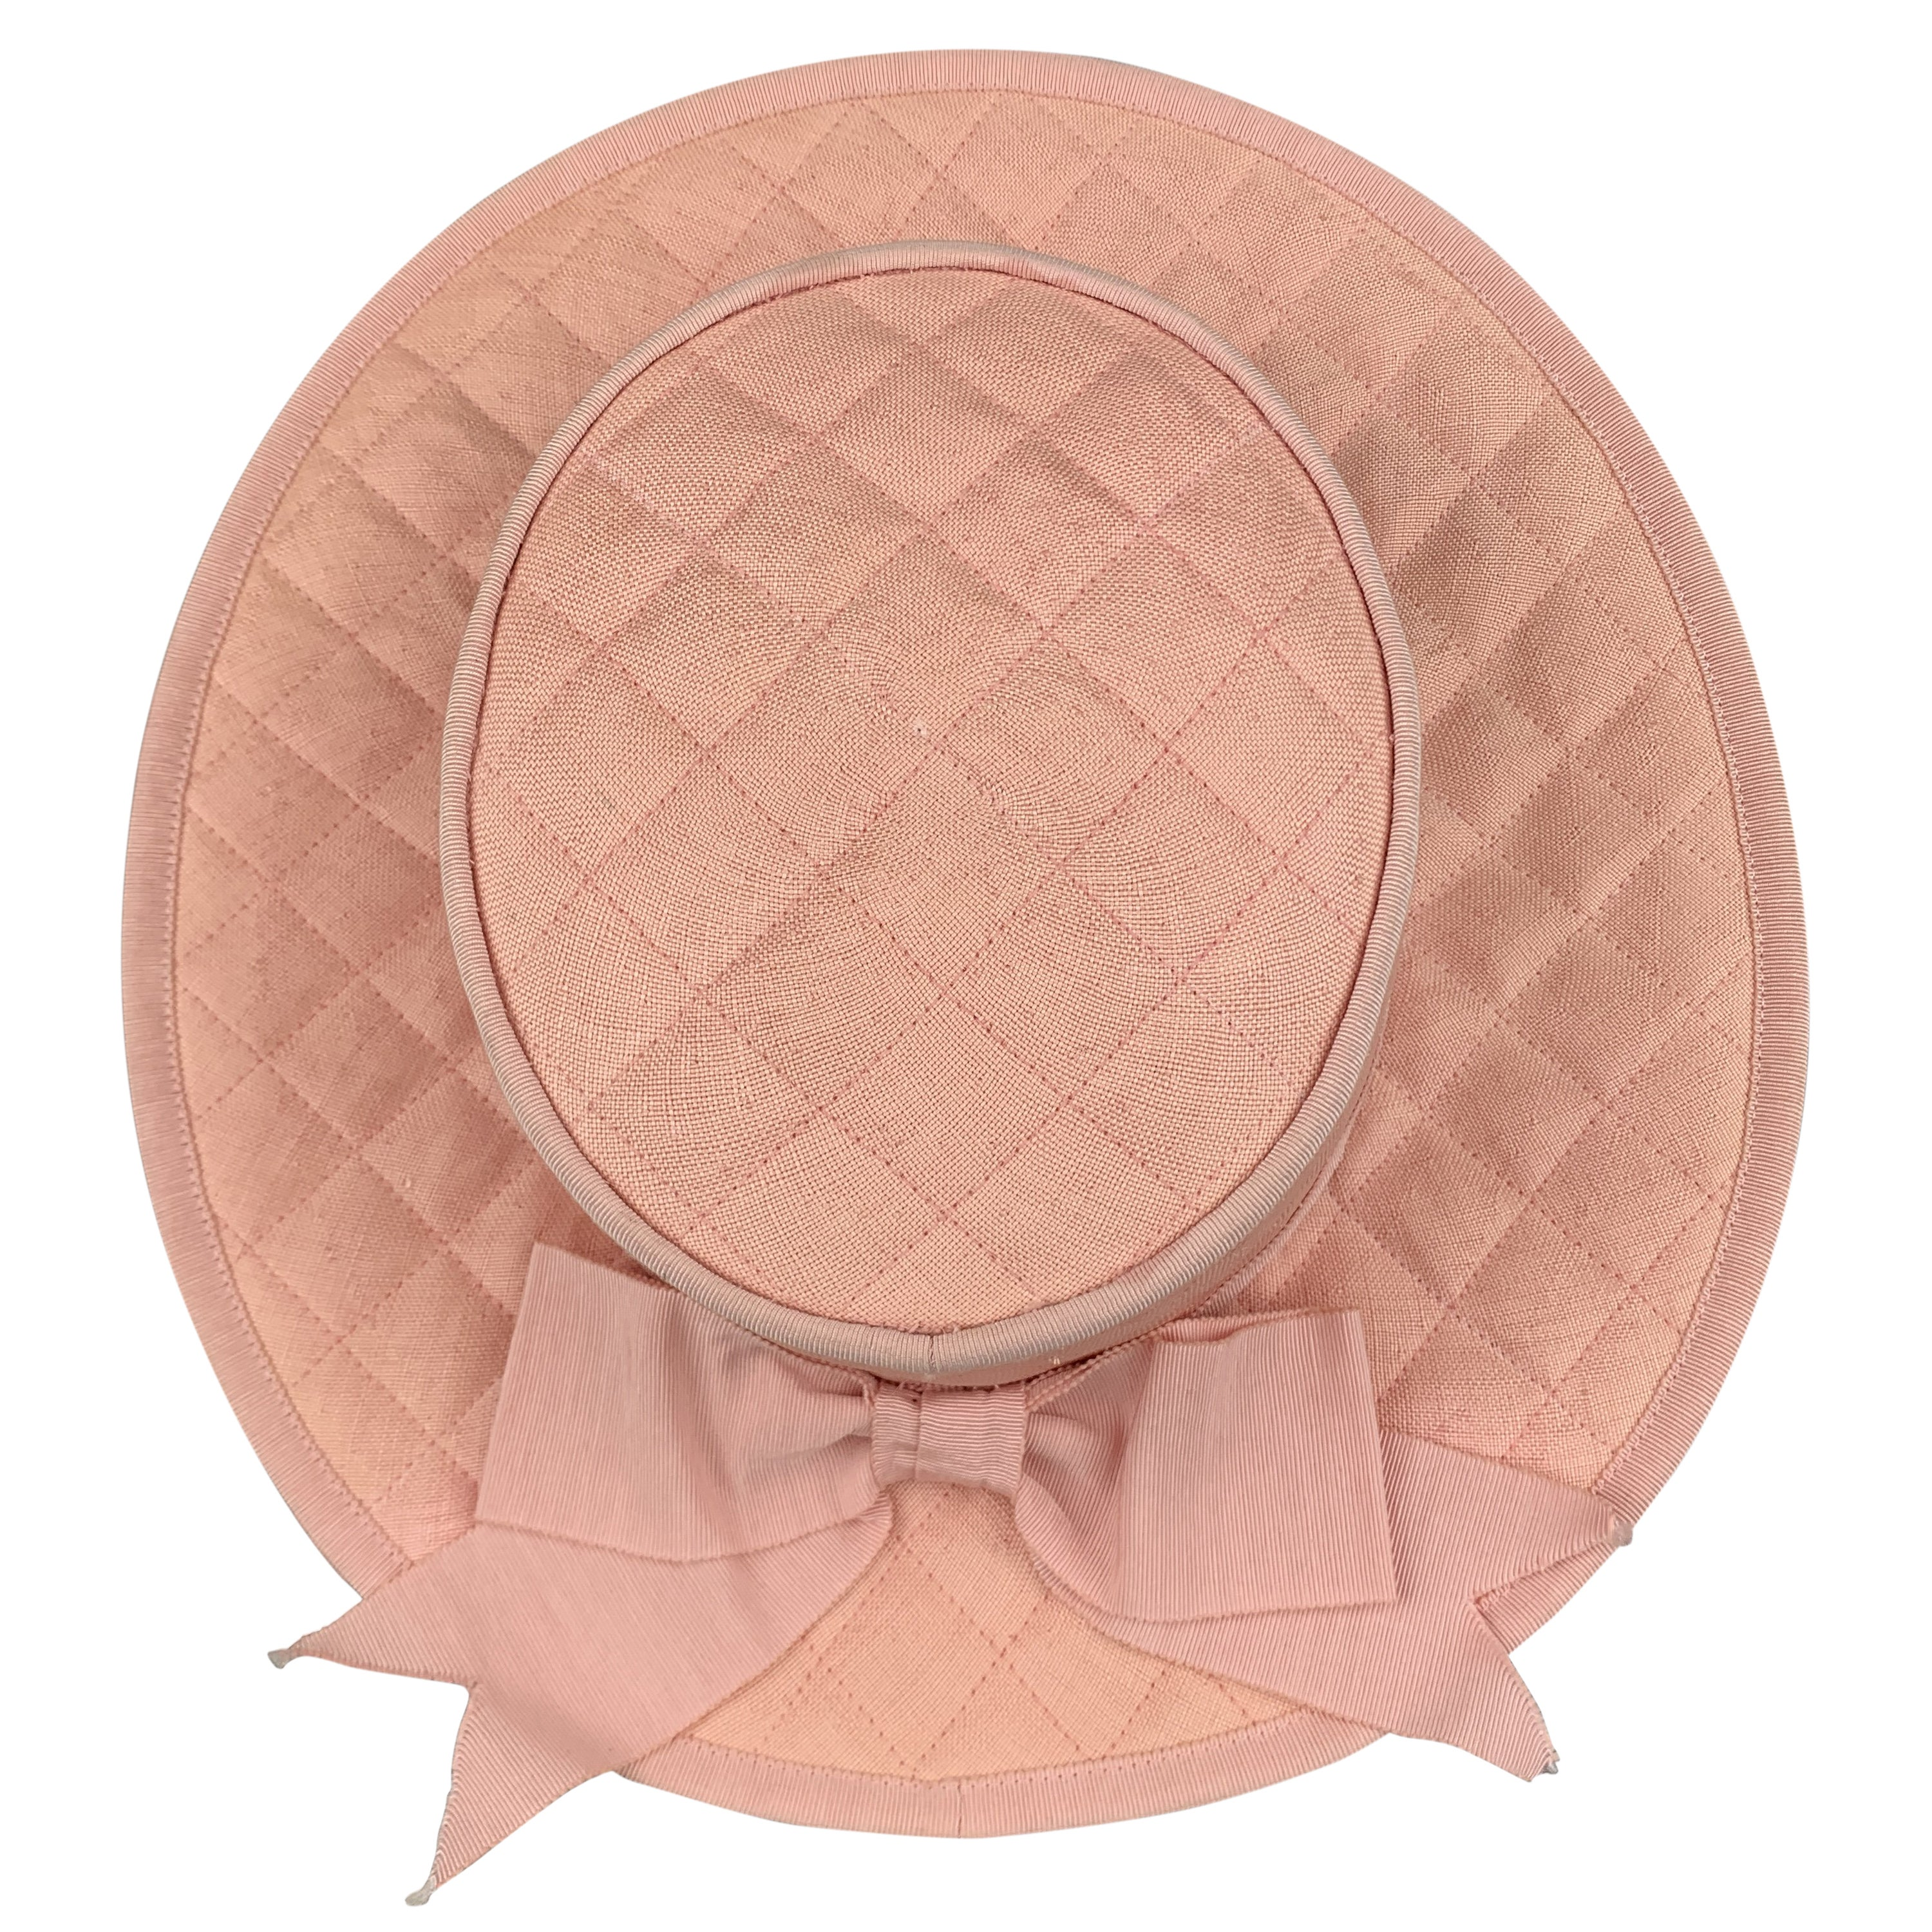 06db2e1bb484b5 Vintage CHANEL Pink Quilted Cotton Flat Top Hat at 1stdibs